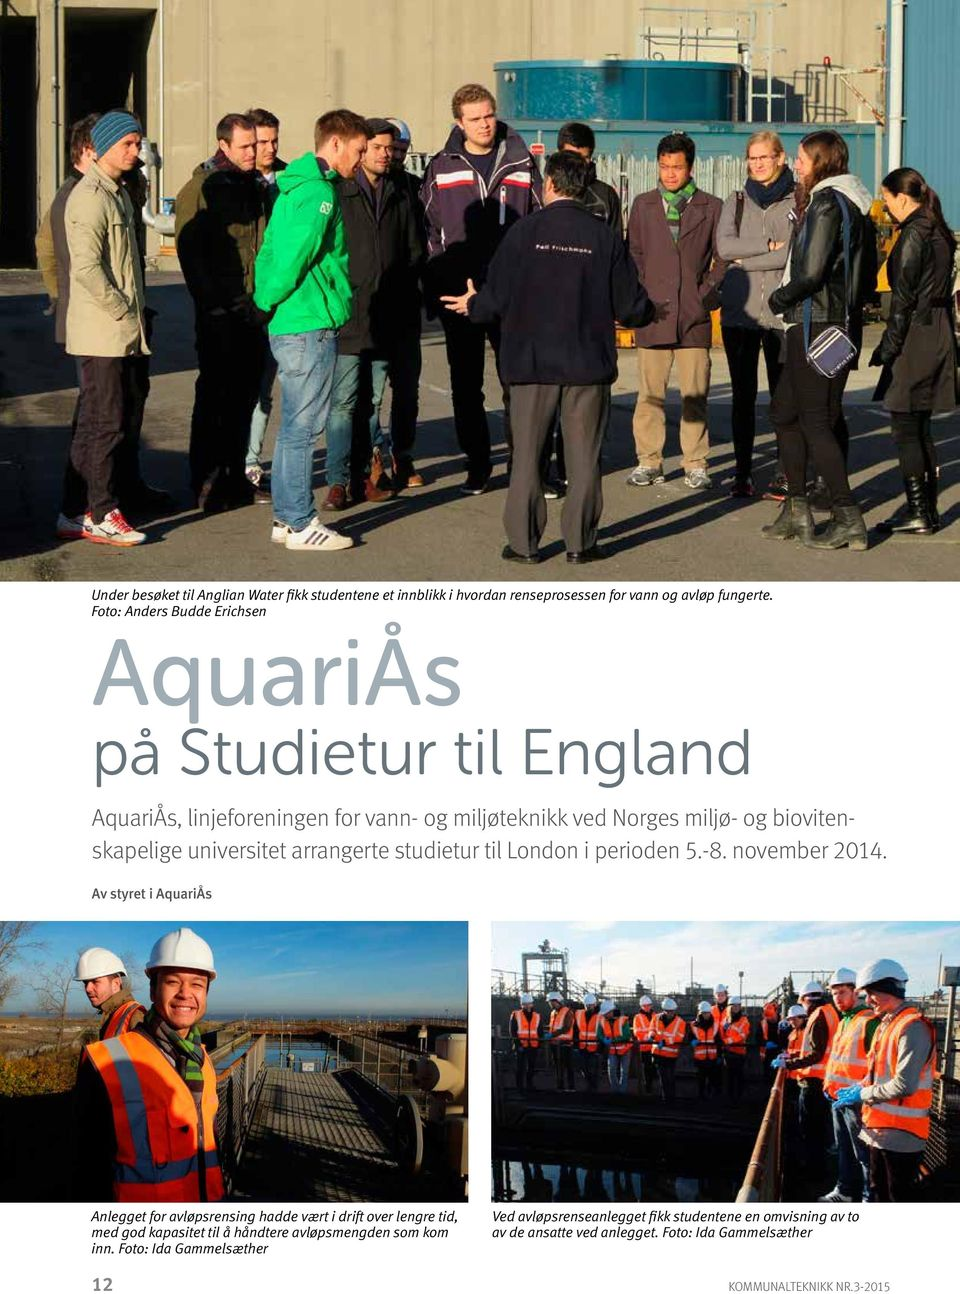 universitet arrangerte studietur til London i perioden 5.-8. november 2014.